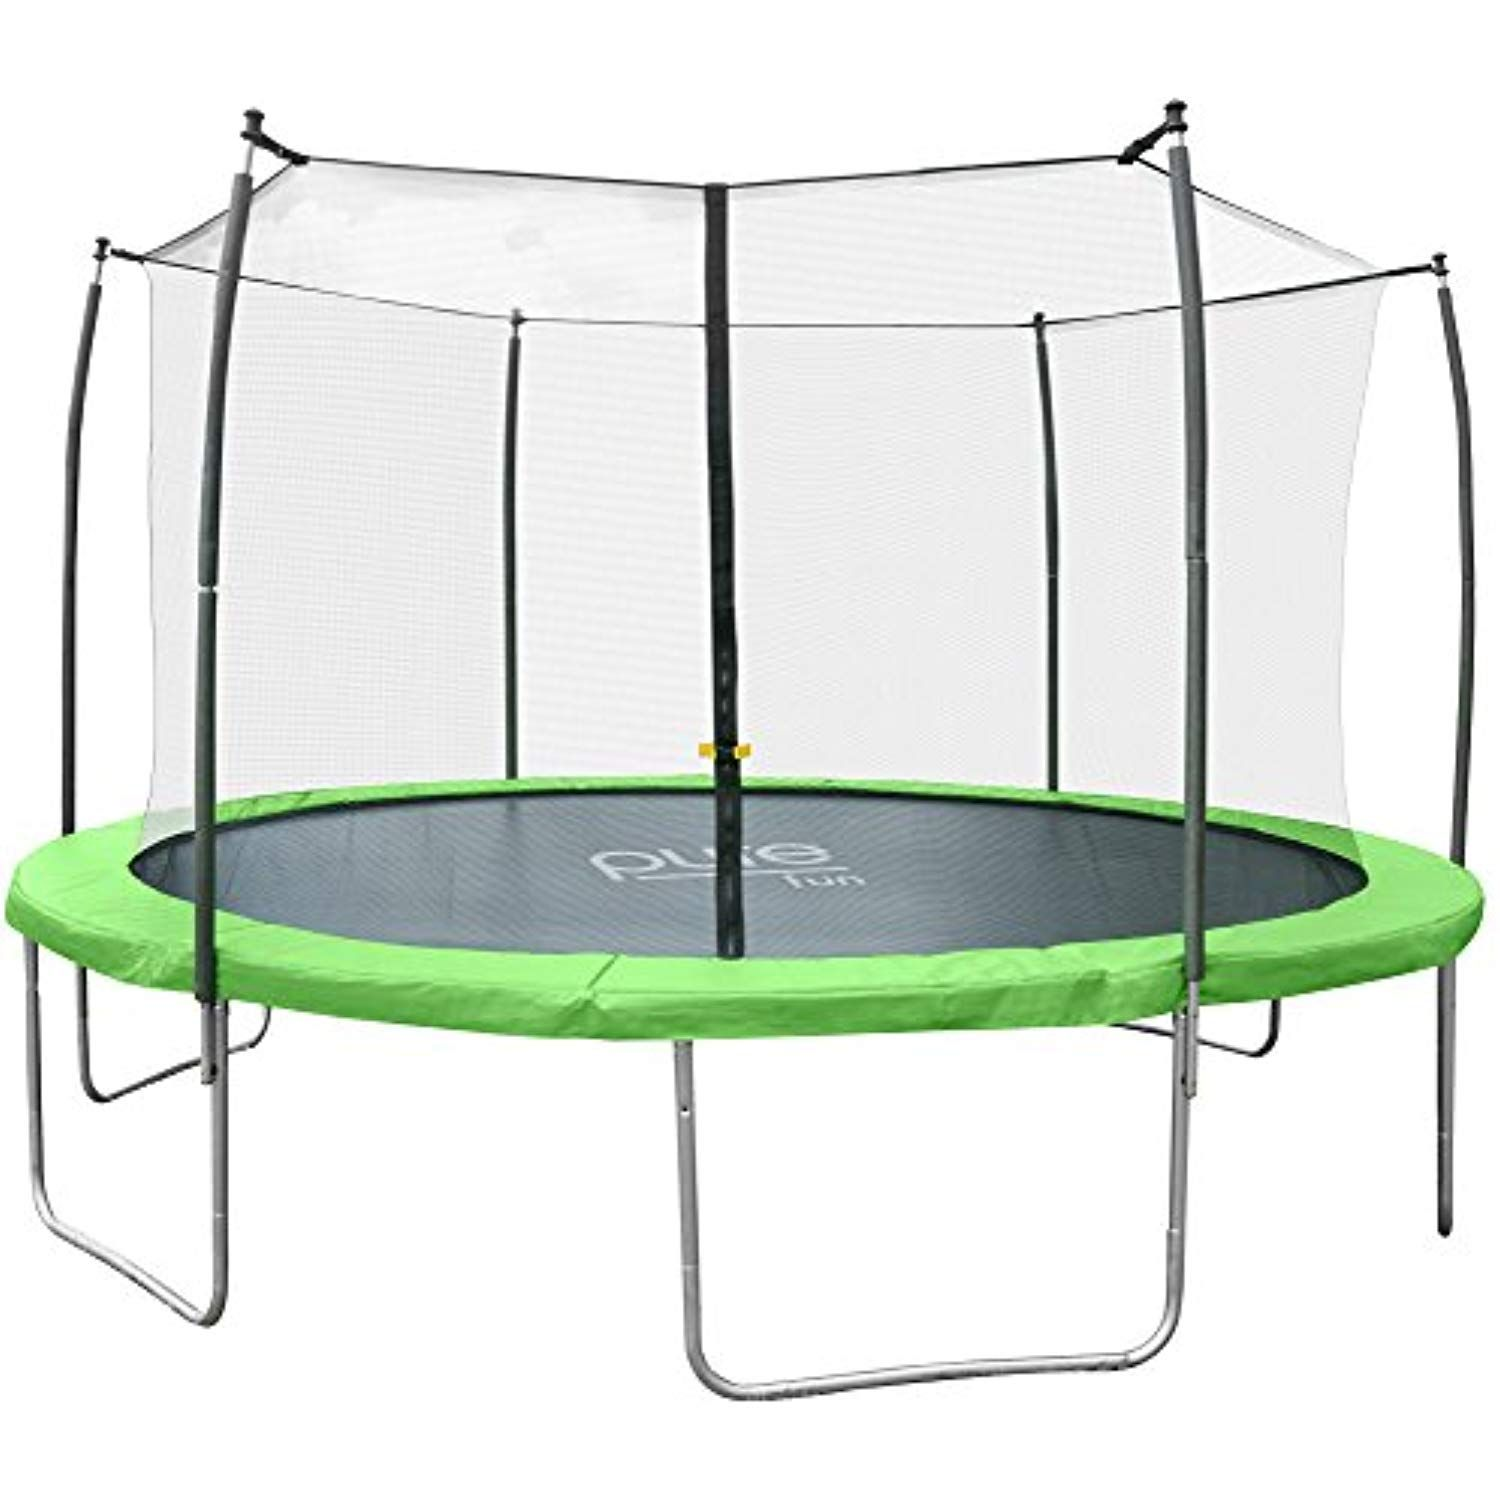 Pure Fun DuraBounce Outdoor Trampoline with Enclosure